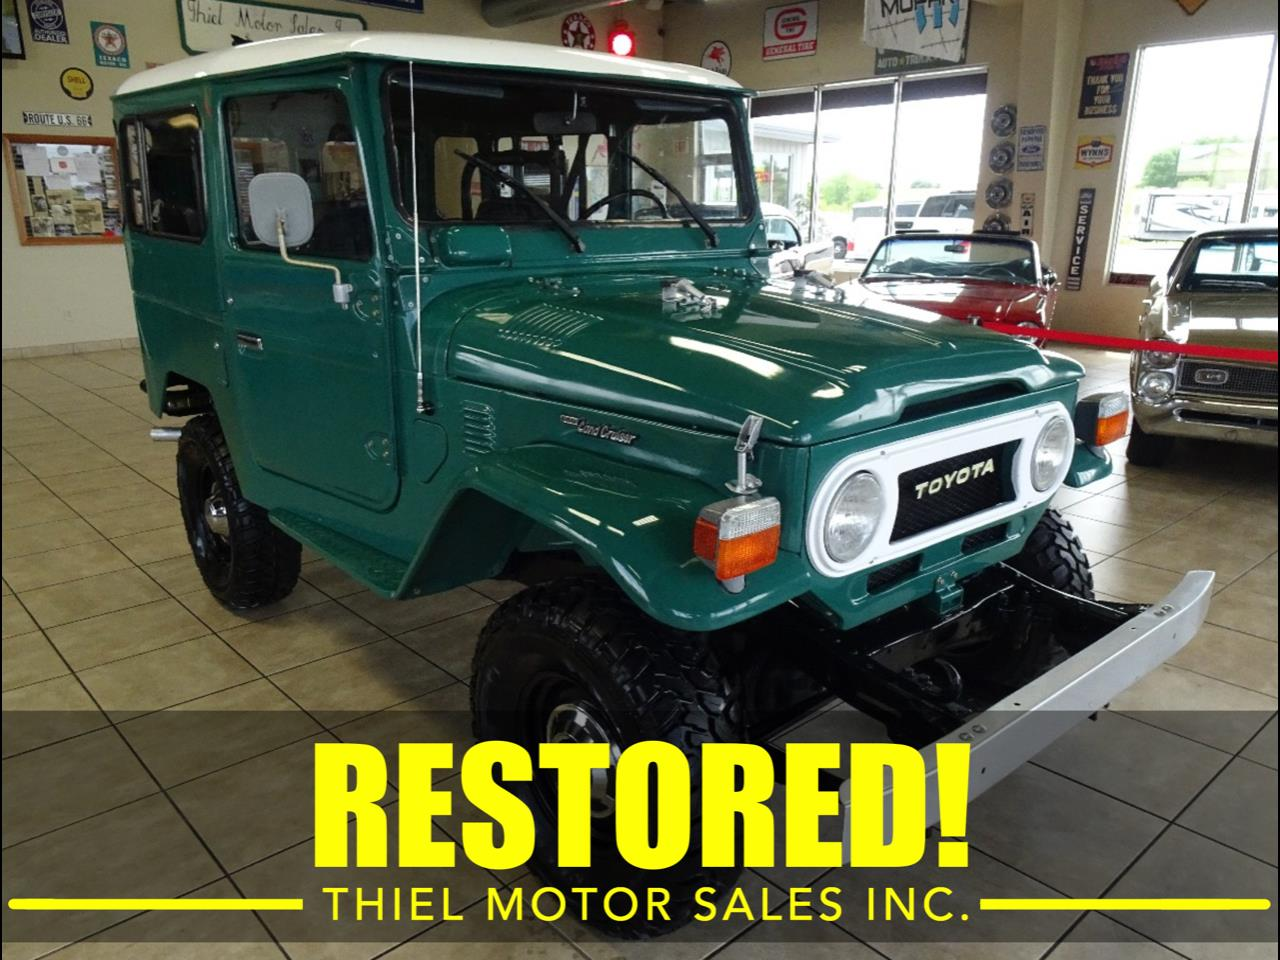 Large Picture of 1978 Land Cruiser FJ40 located in Iowa - $29,997.00 Offered by Thiel Motor Sales Inc. - QCAV